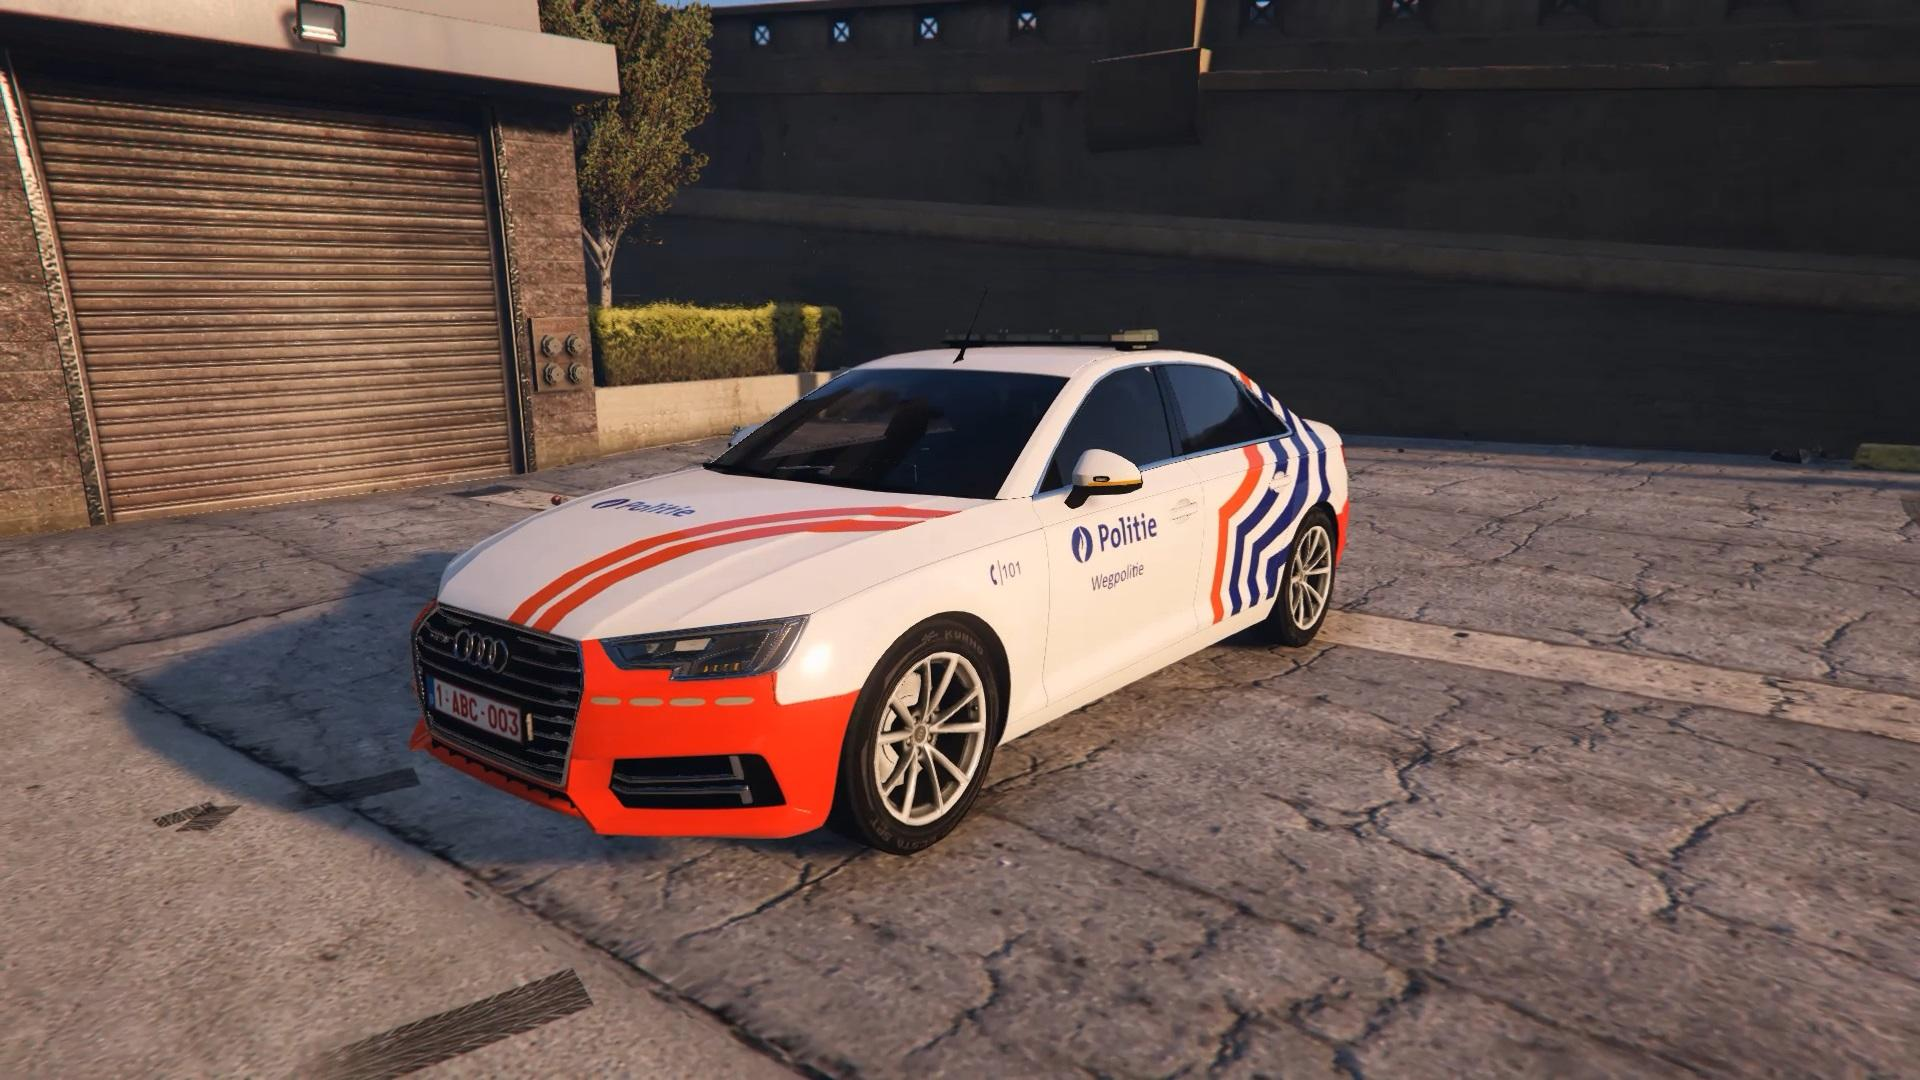 2017 police audi a4 quattro wegpolitie belgium police. Black Bedroom Furniture Sets. Home Design Ideas